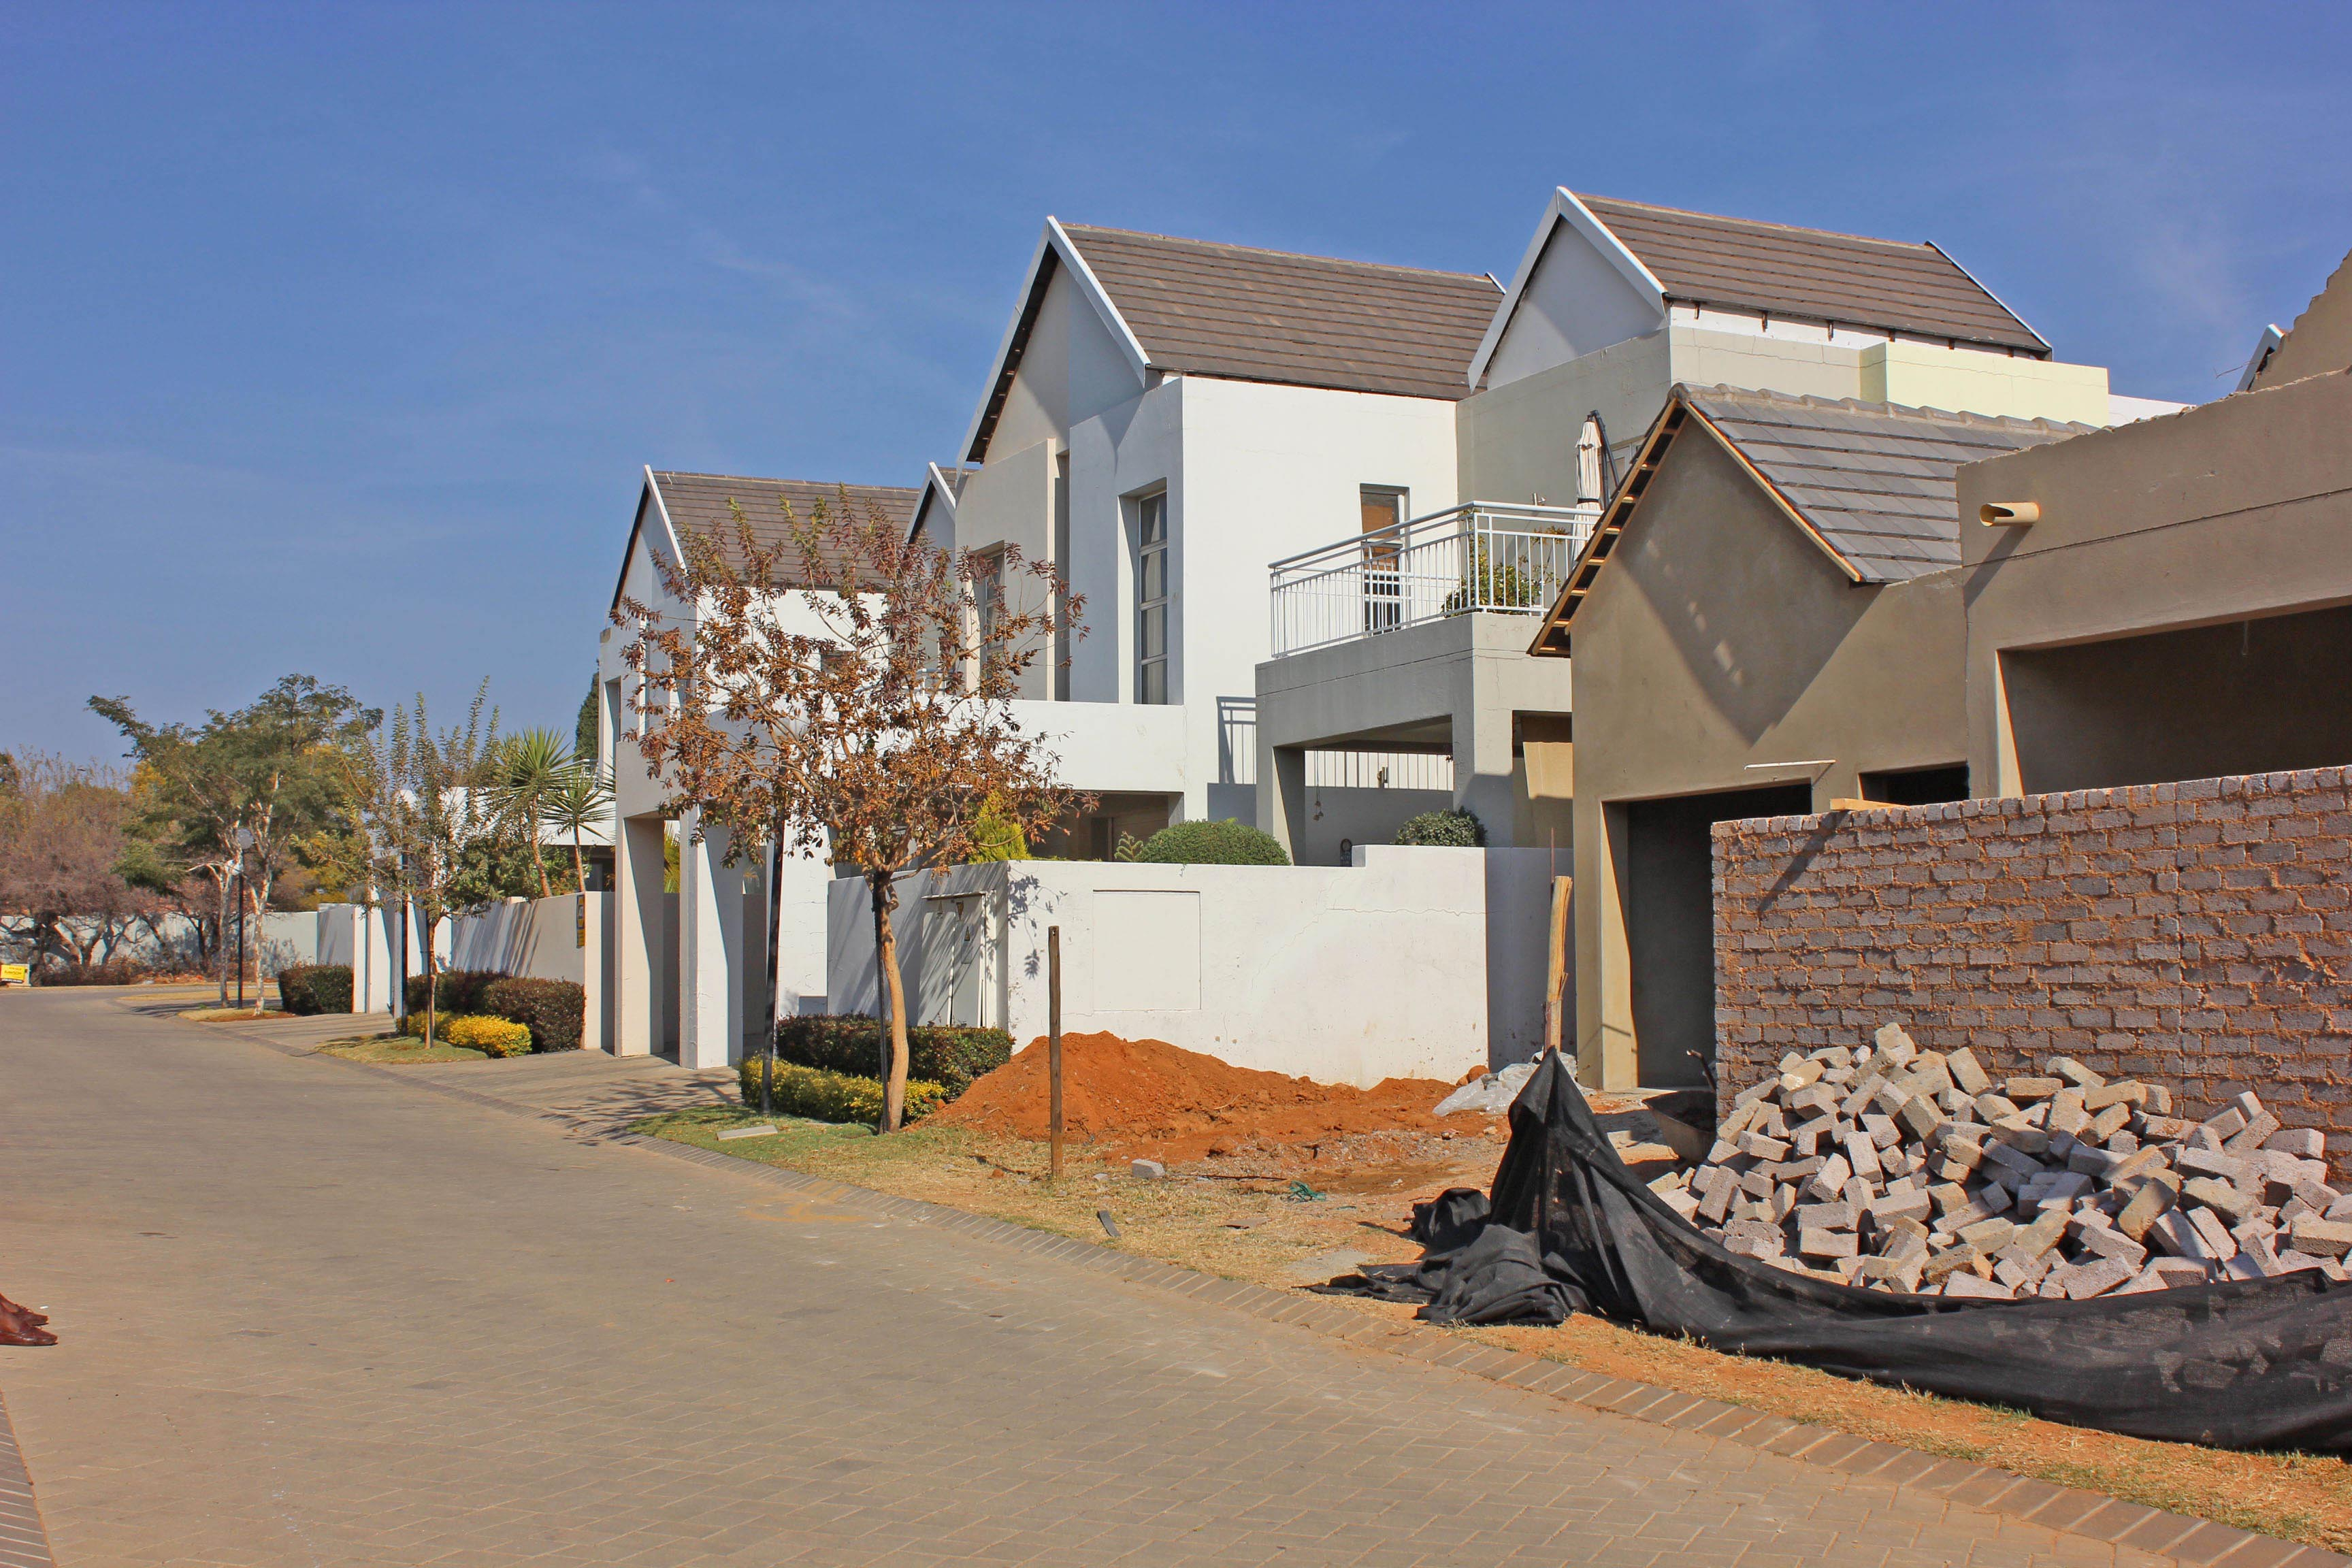 3 Bedroom Townhouse for sale in North Riding ENT0075308 : photo#20